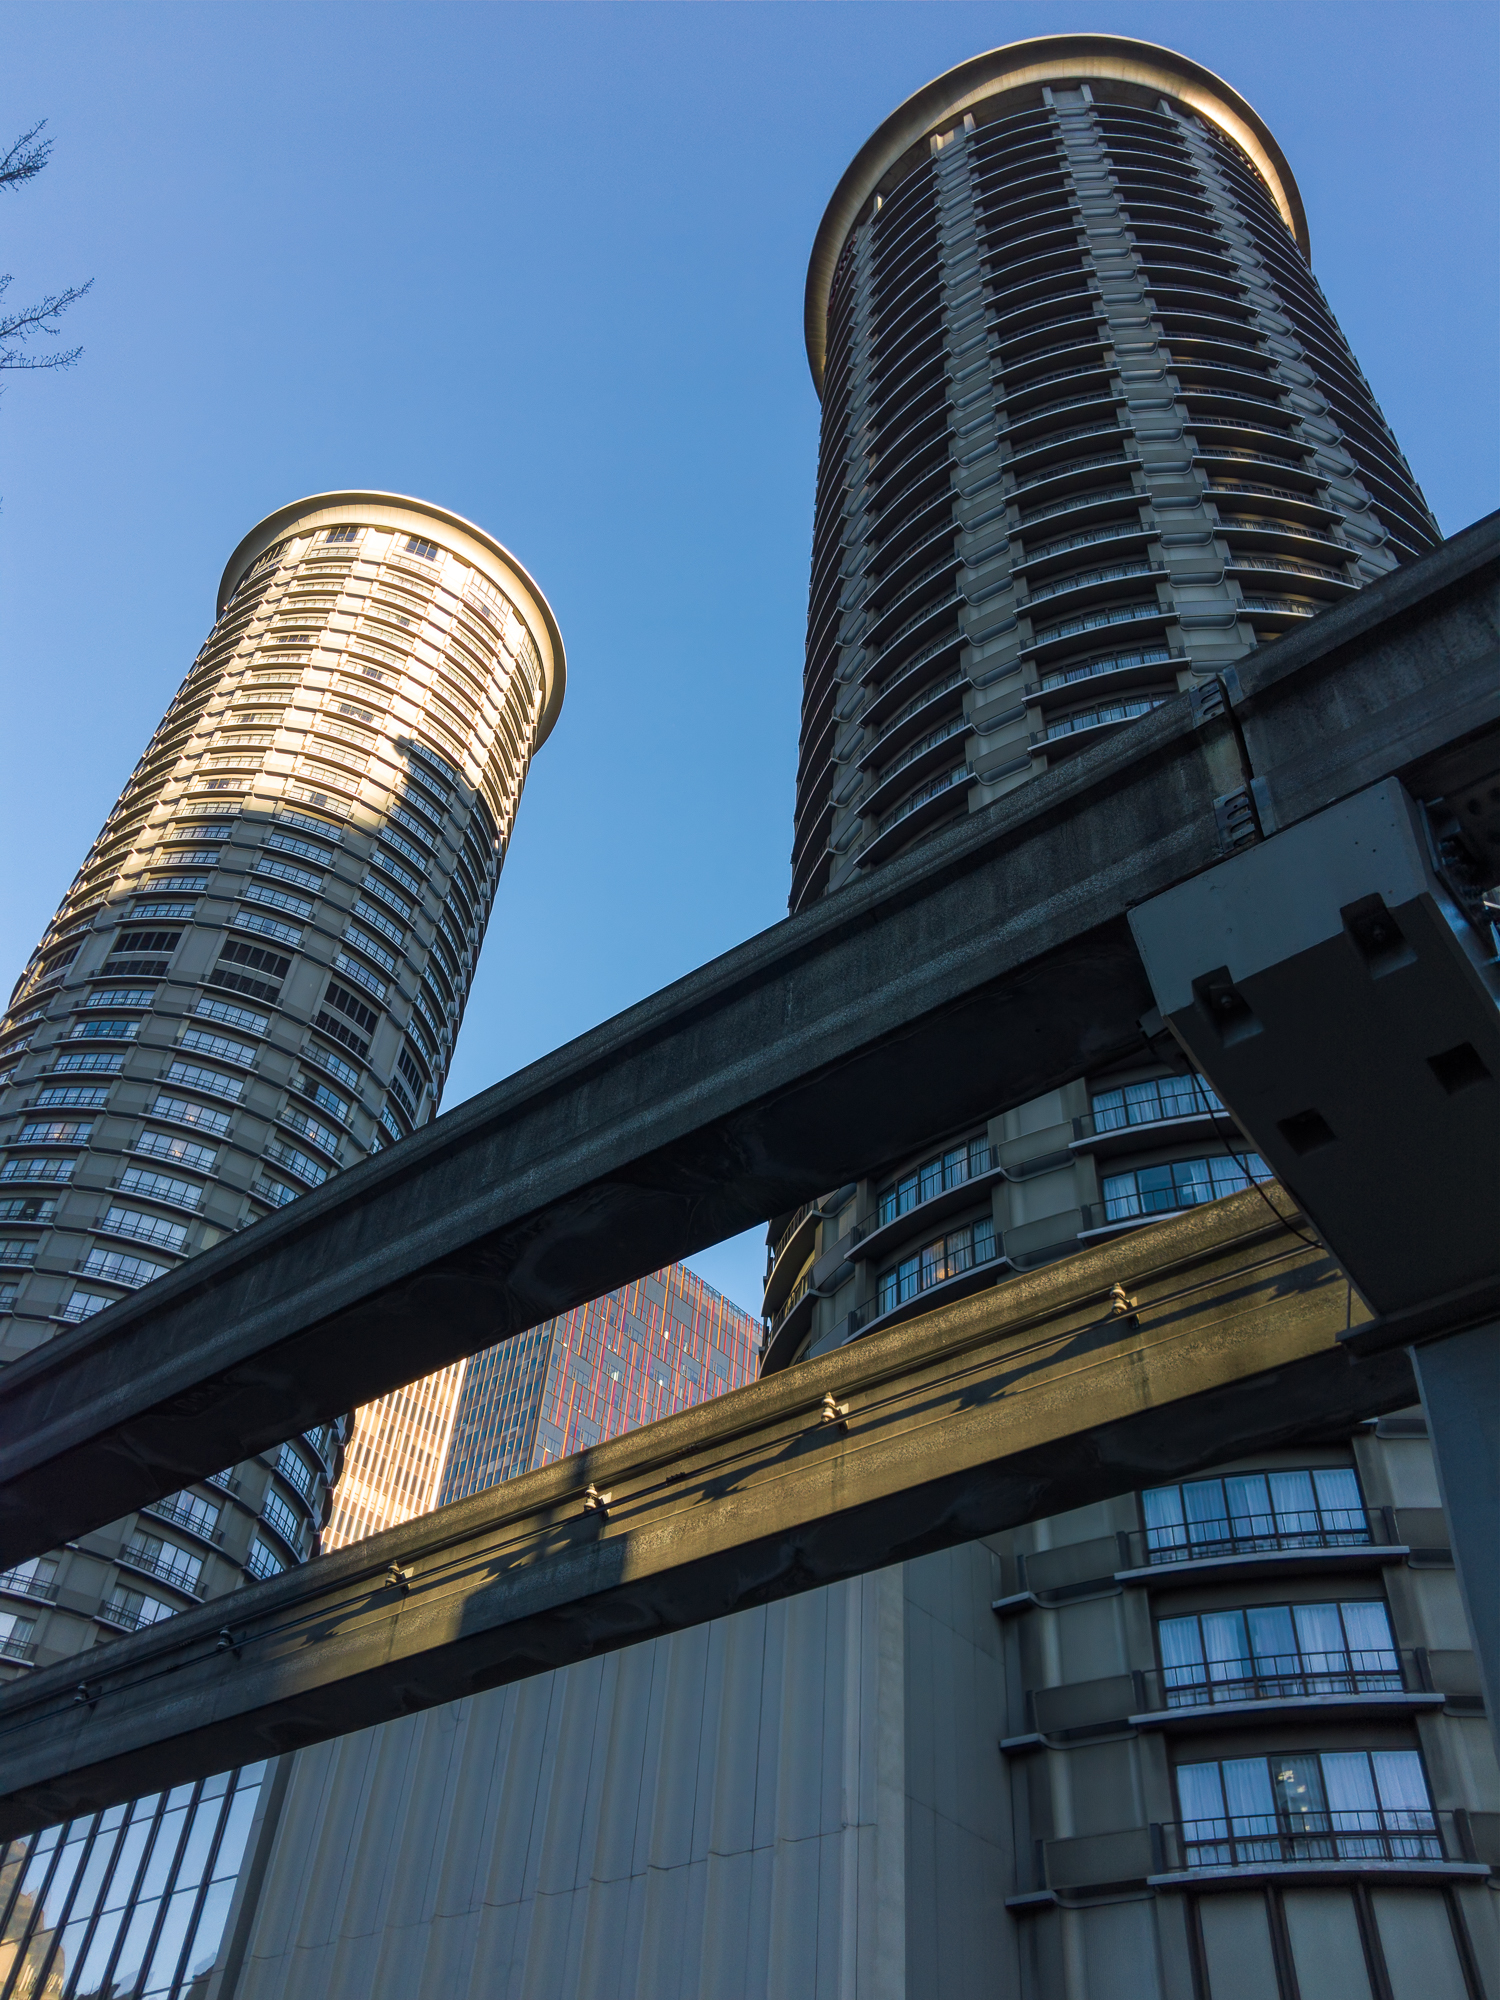 Monorail and Highrises - L16